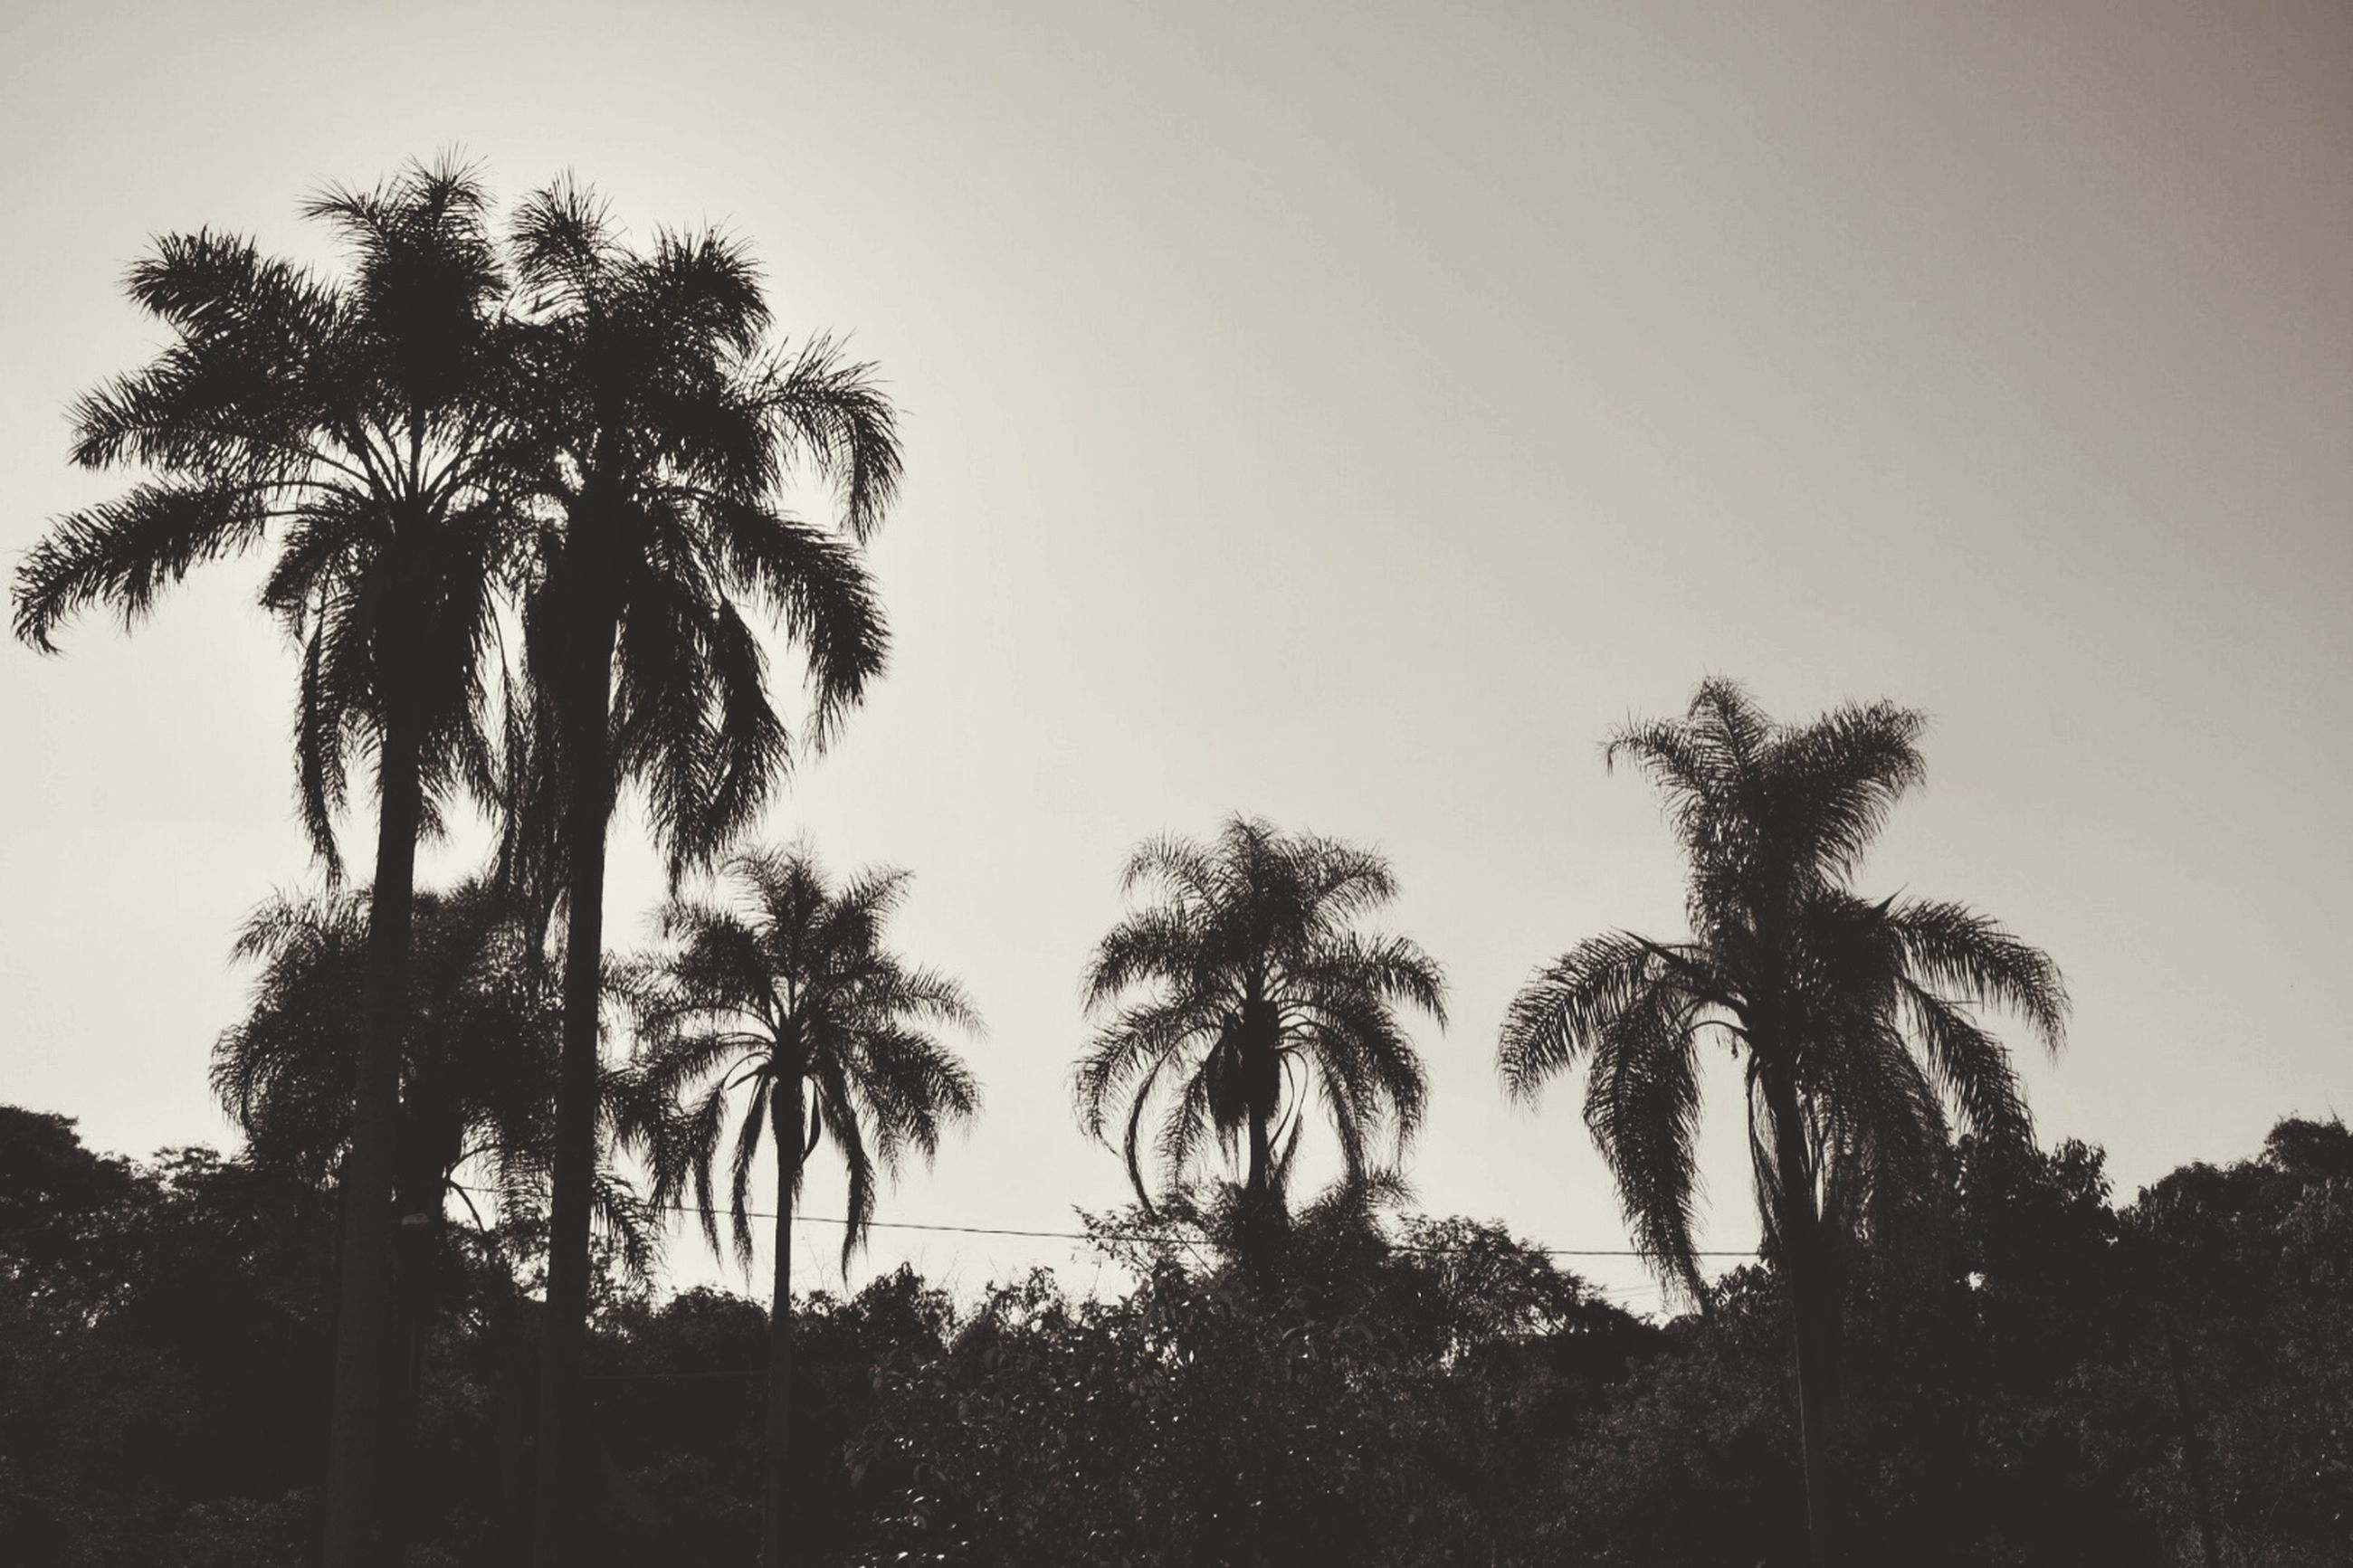 palm tree, tree, clear sky, low angle view, growth, tranquility, silhouette, tranquil scene, nature, beauty in nature, sky, copy space, scenics, tree trunk, coconut palm tree, outdoors, no people, tall - high, day, idyllic